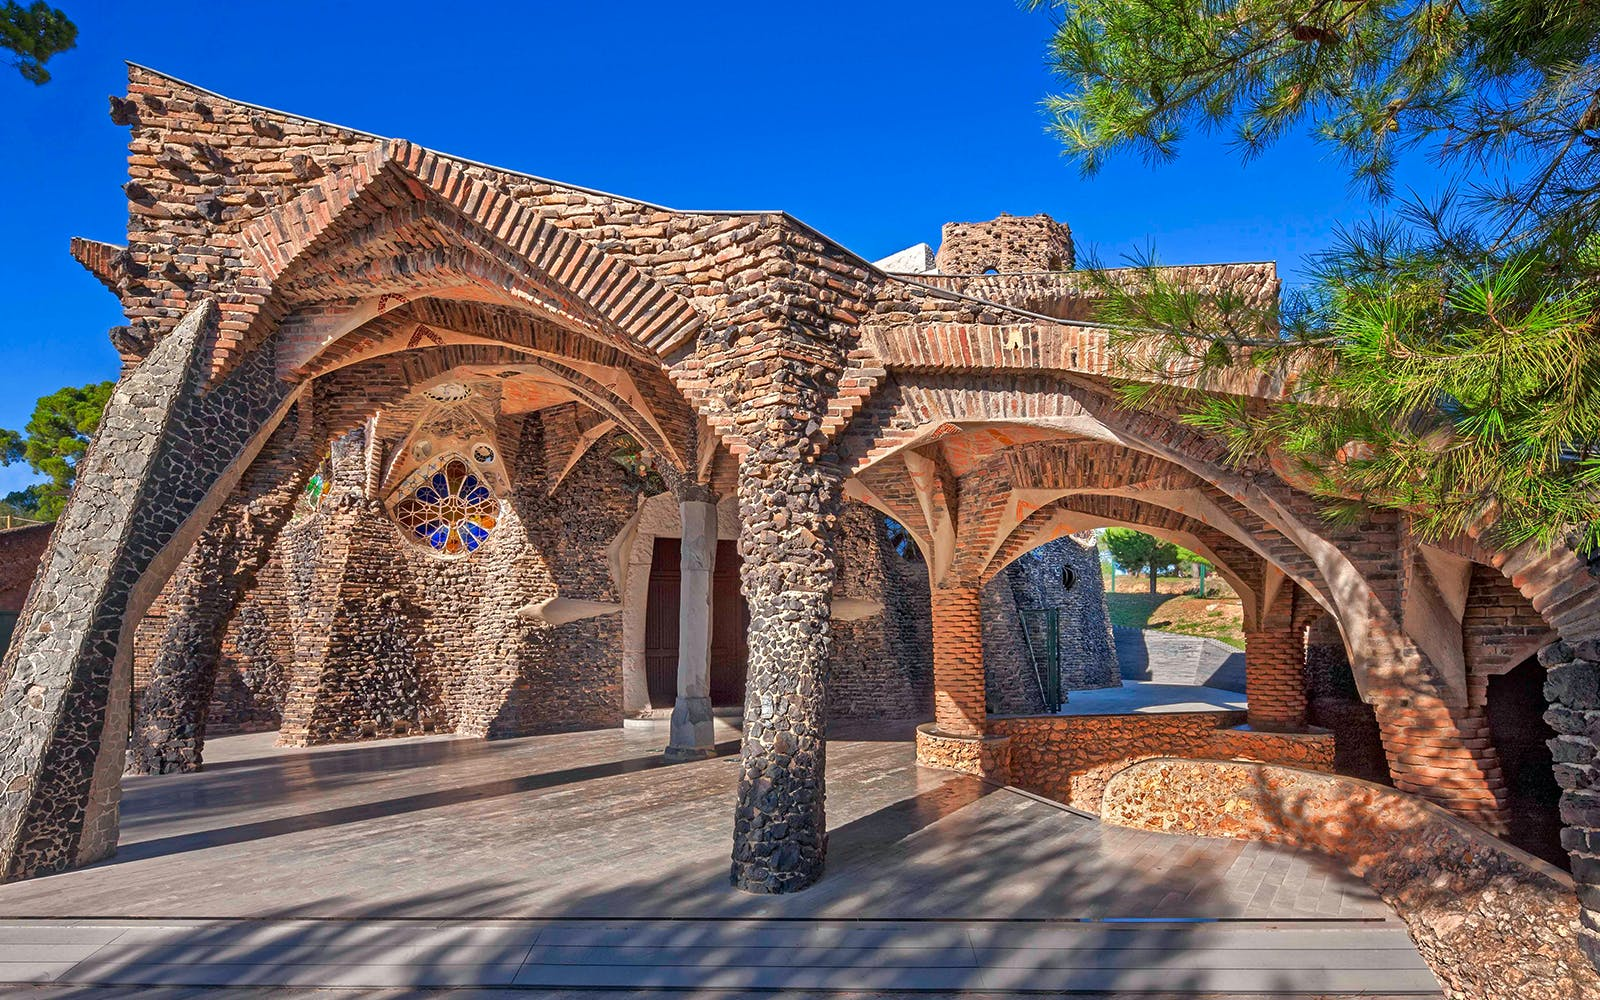 Colonia Guell Tickets With Transportation to/from Barcelona